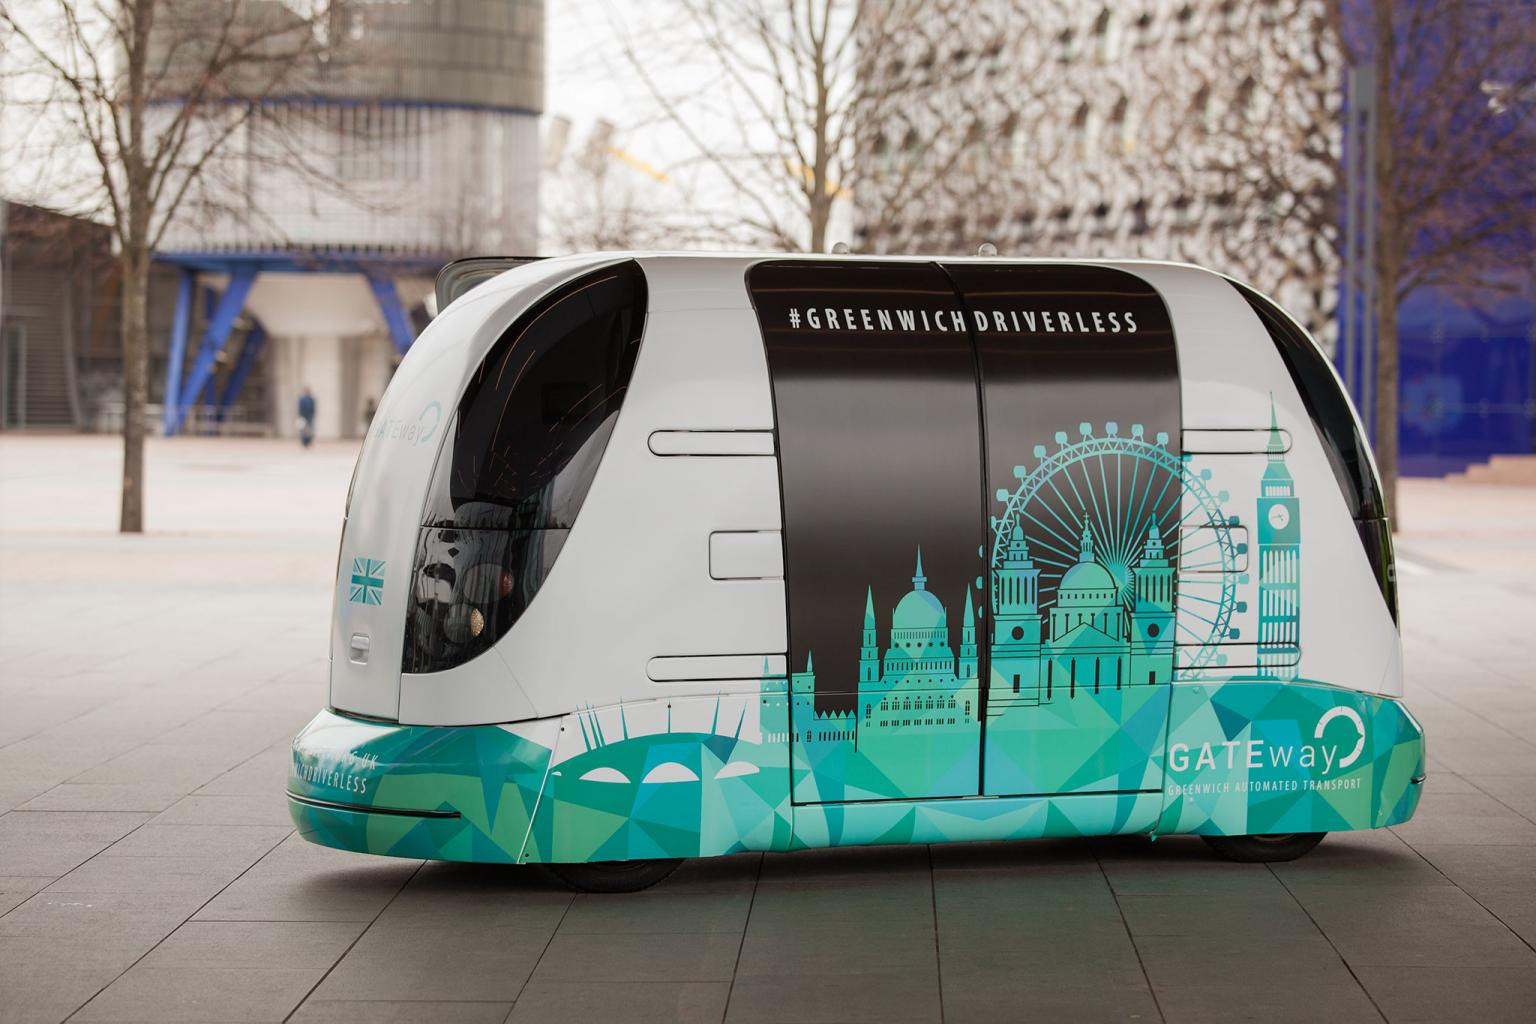 The pods will shuttle visitors around the O2 arena